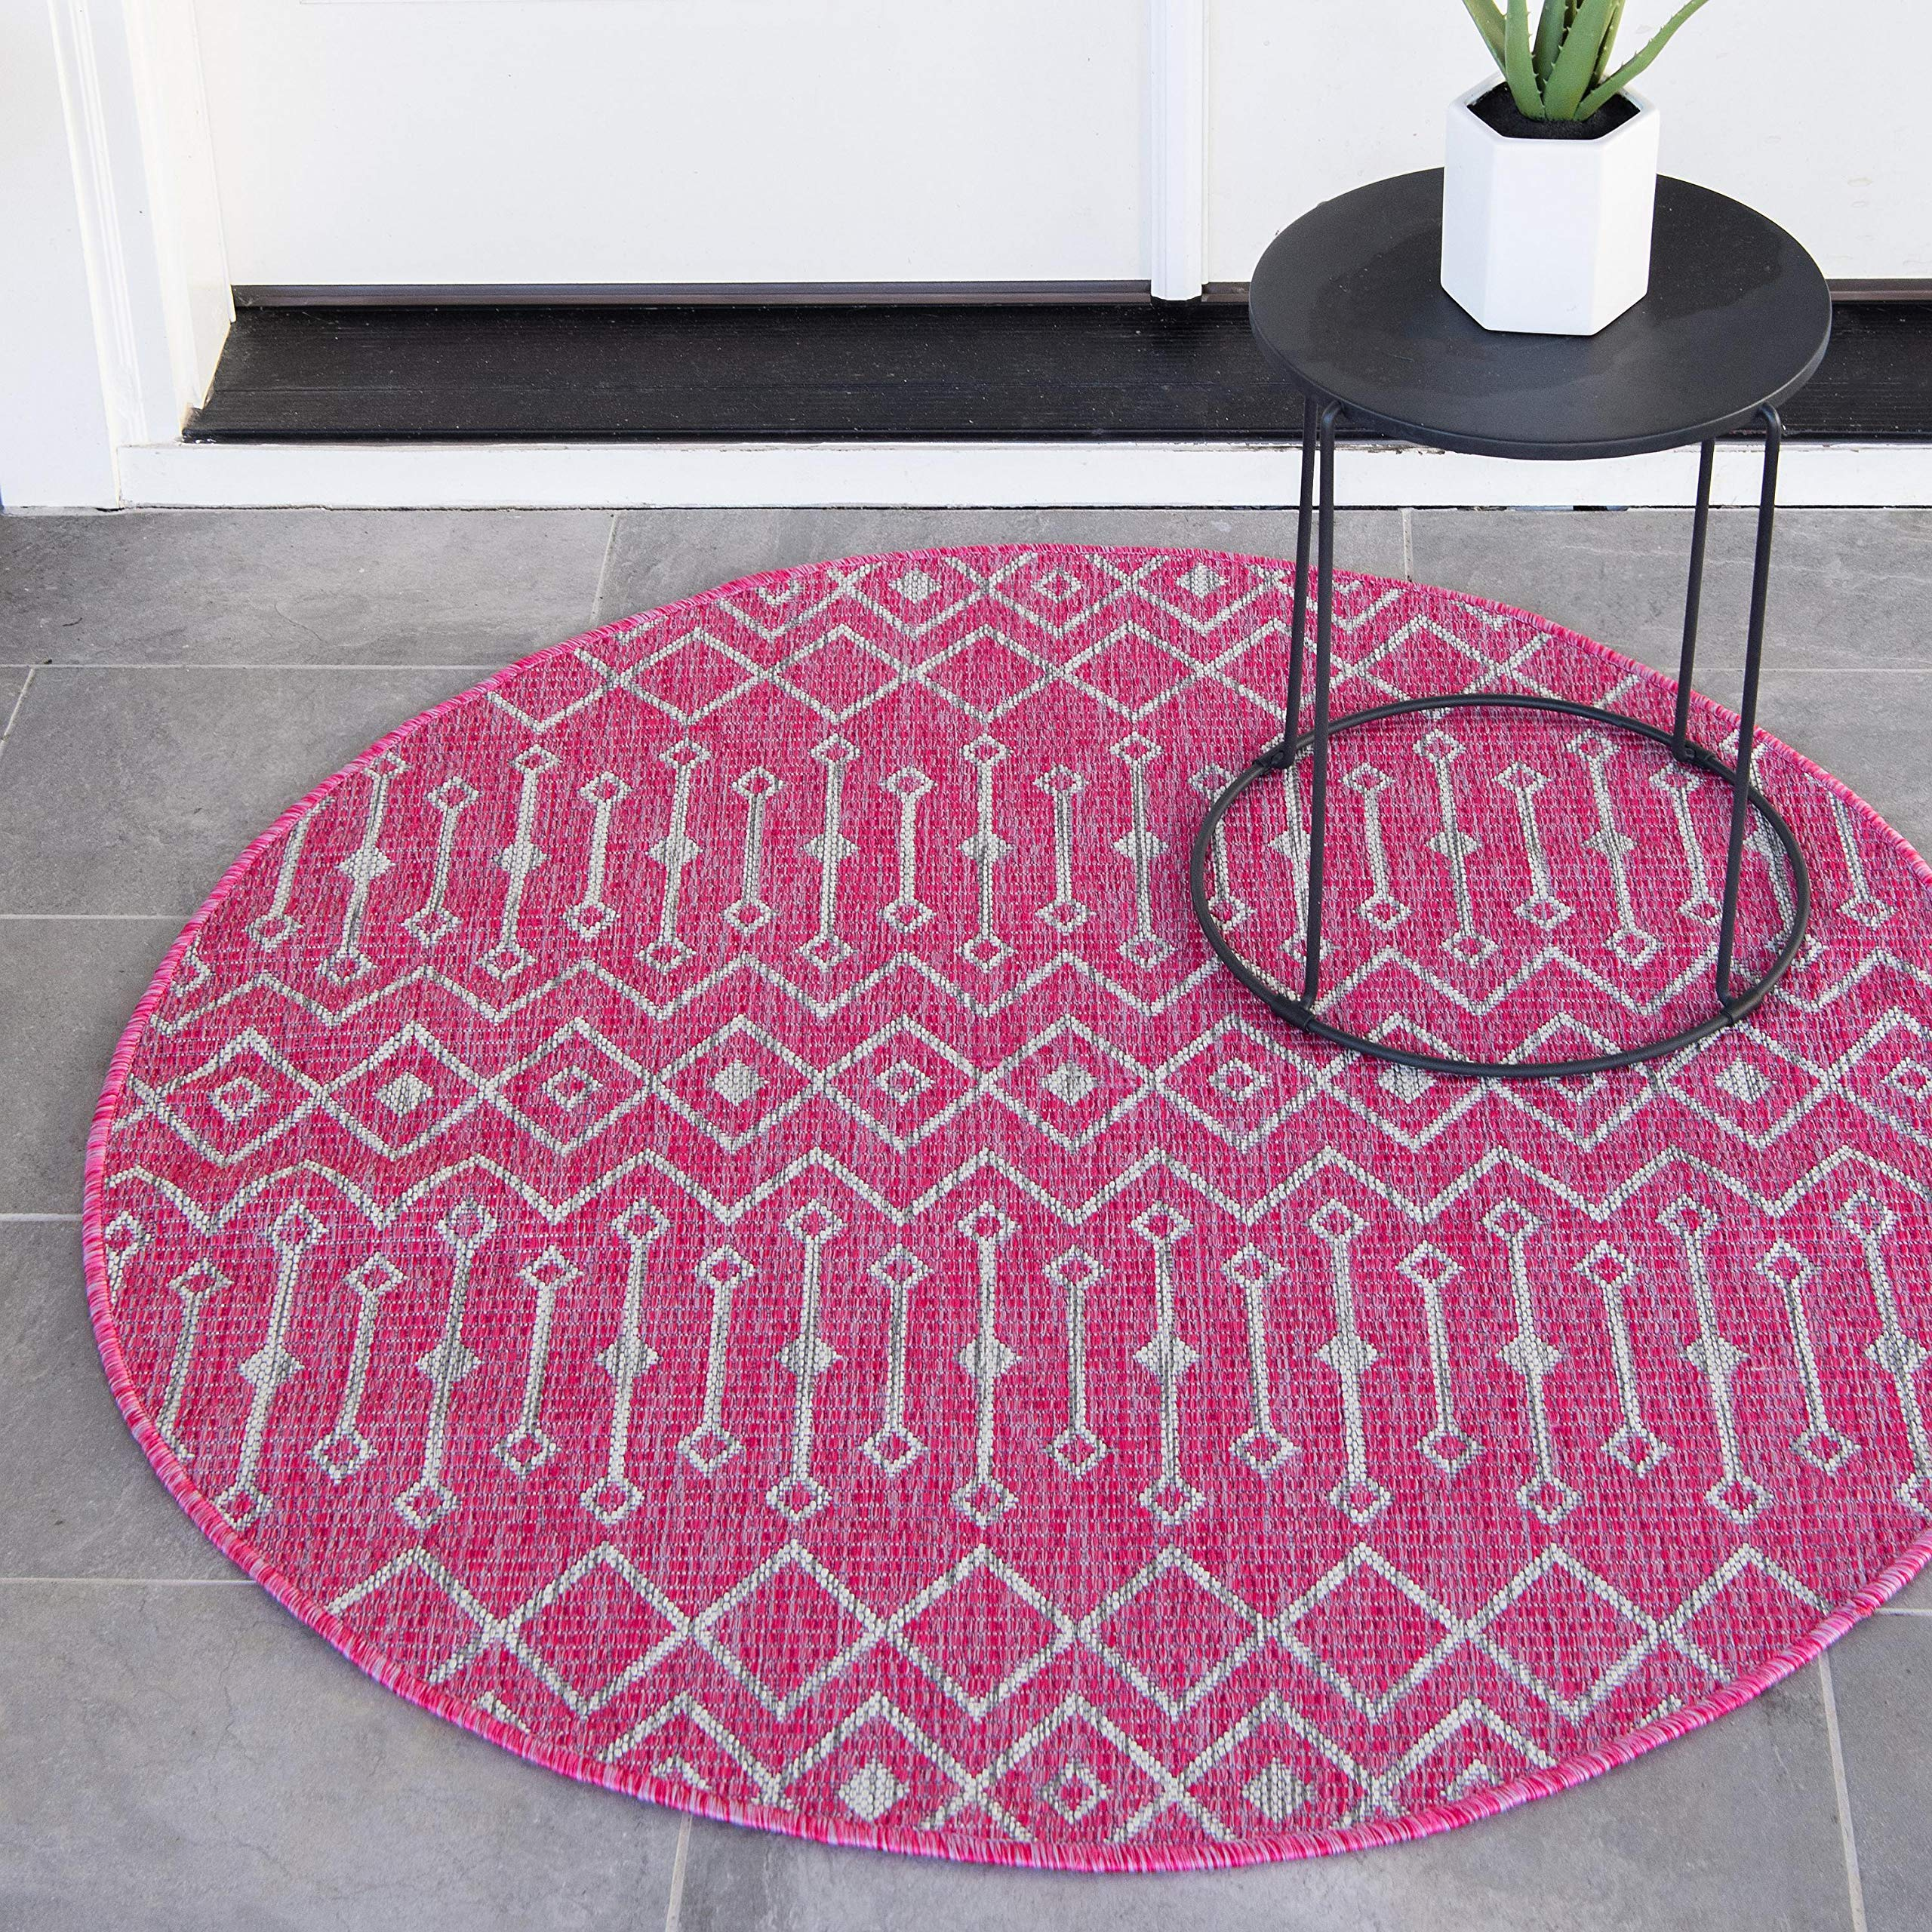 Best Rated in Outdoor Rugs & Helpful Customer Reviews Amazon